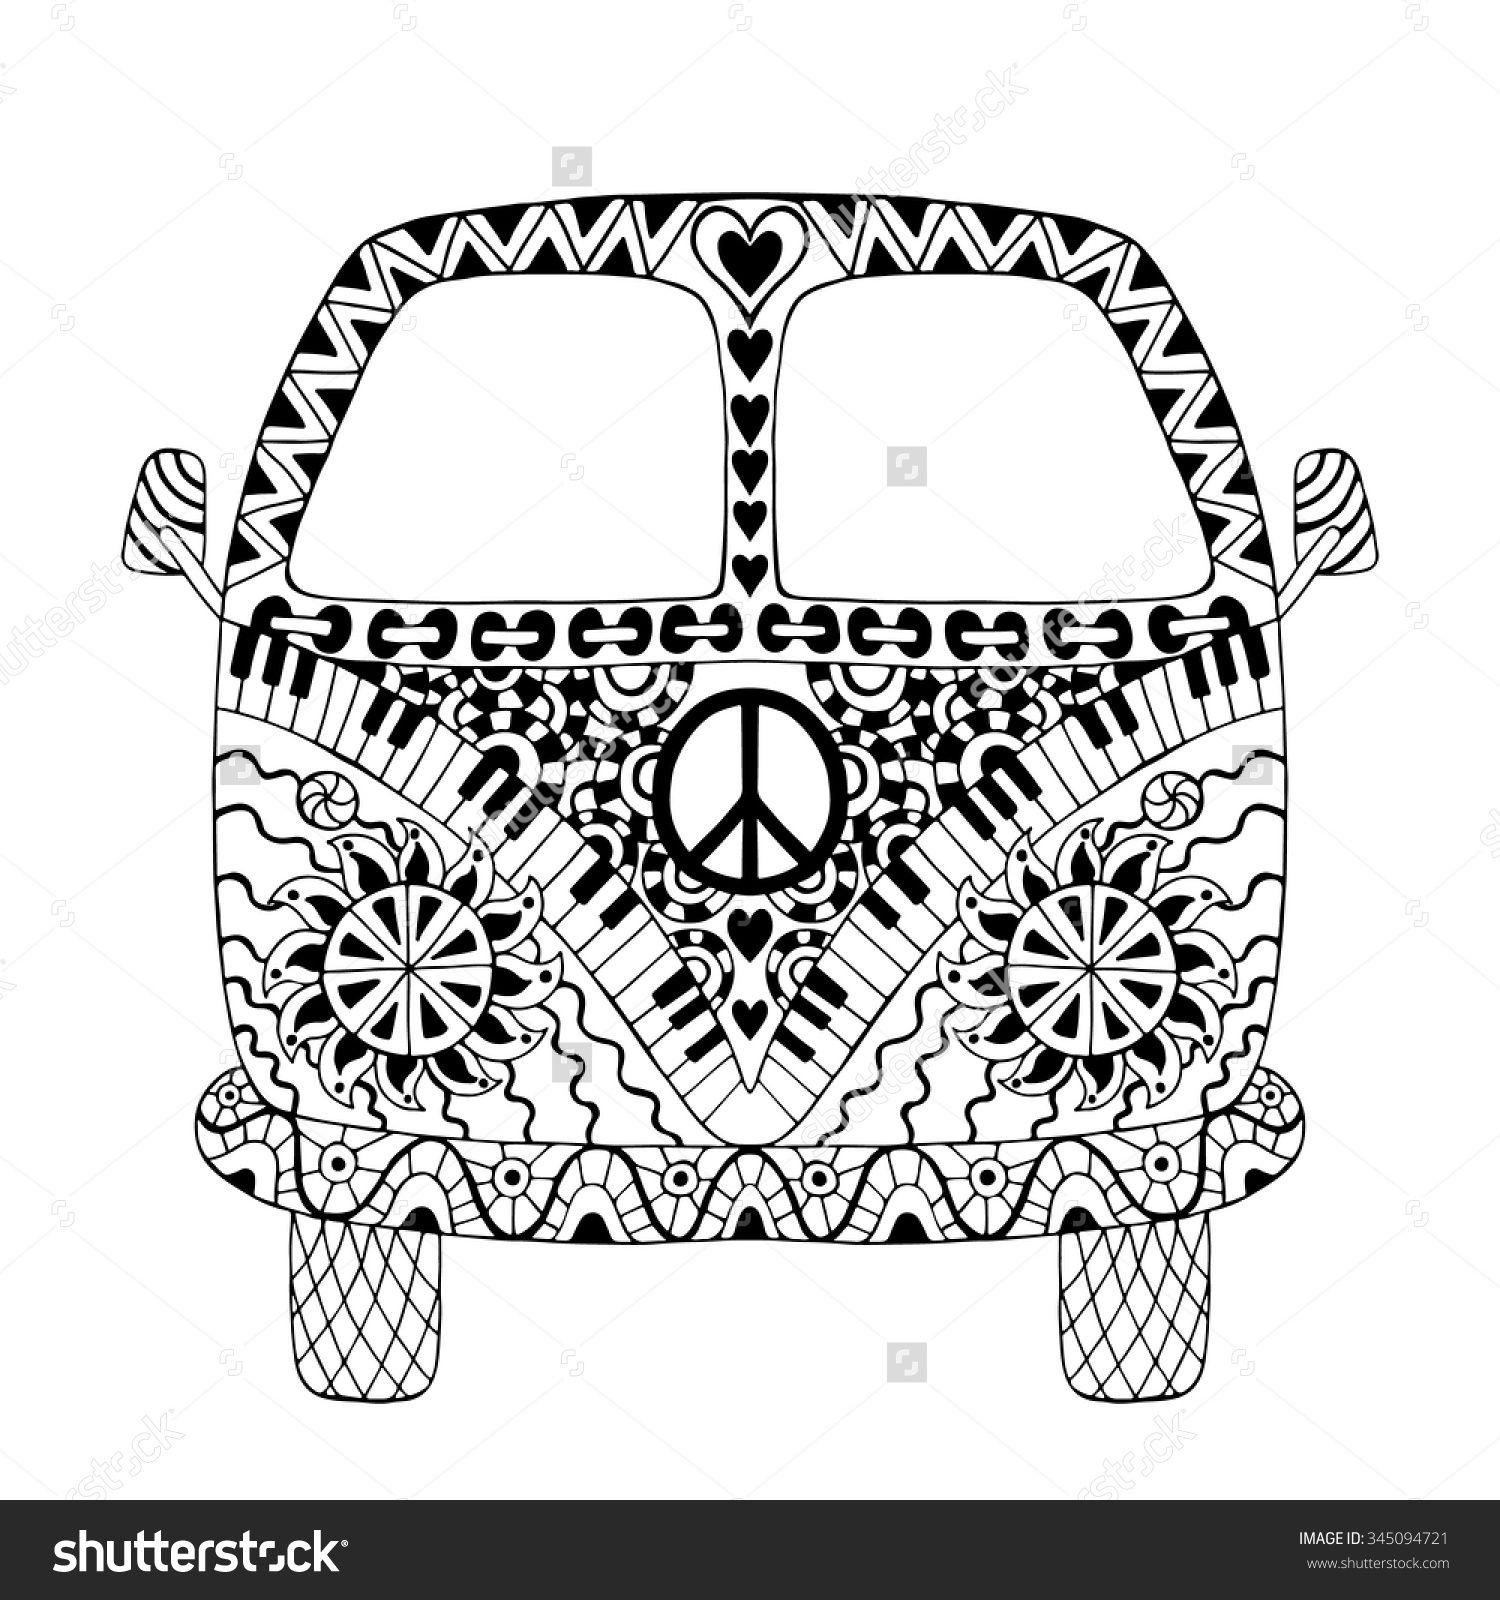 hippie vintage mini van in zentangle style doodles zentangles patterns pinterest. Black Bedroom Furniture Sets. Home Design Ideas